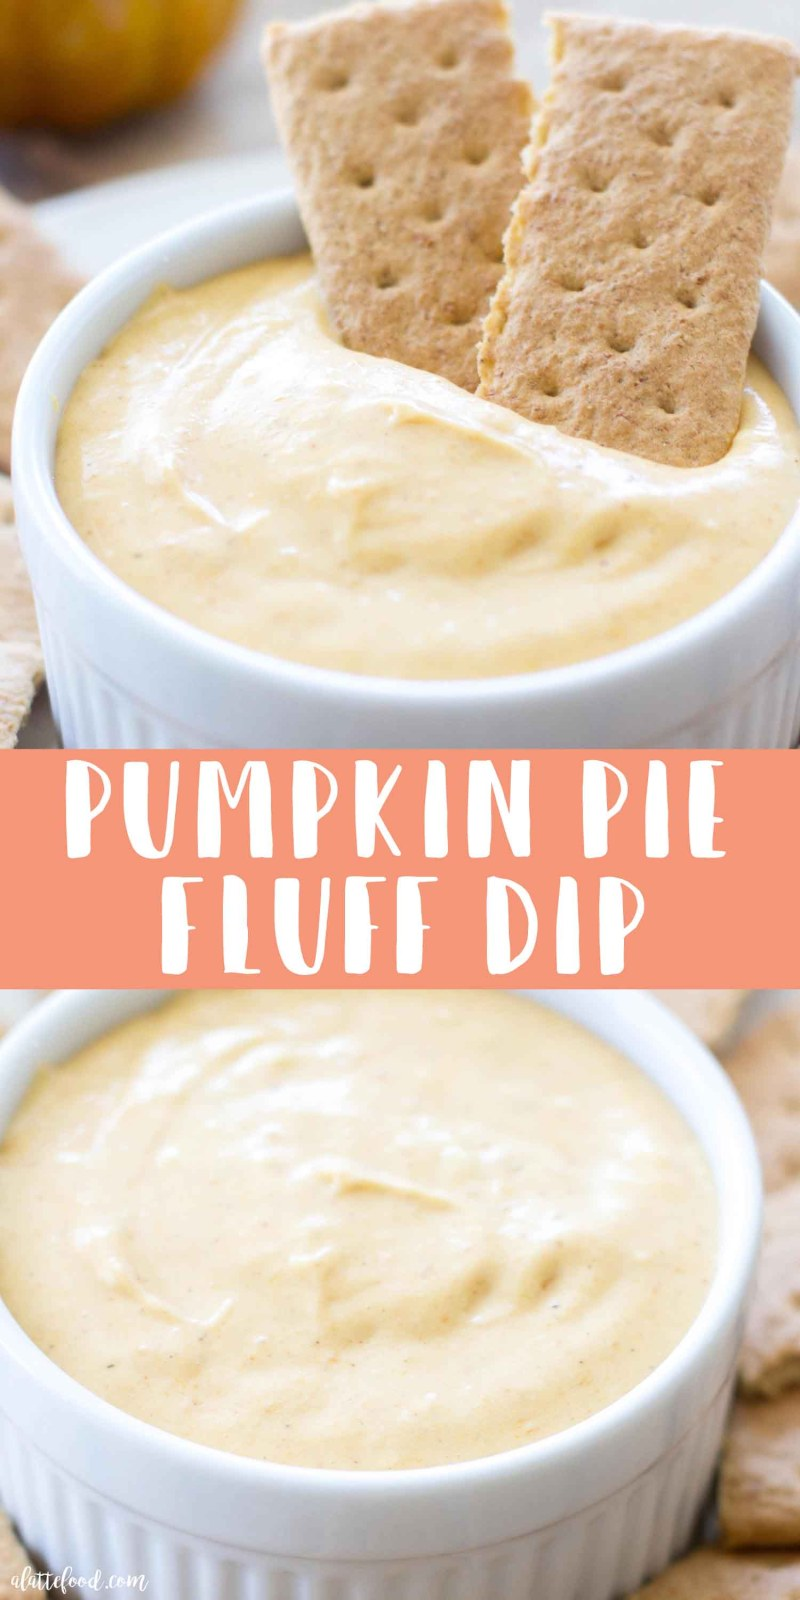 Pumpkin Pie Fluff Dip -- collage of pumpkin pie fluff dip with marshmallow fluff and cream cheese